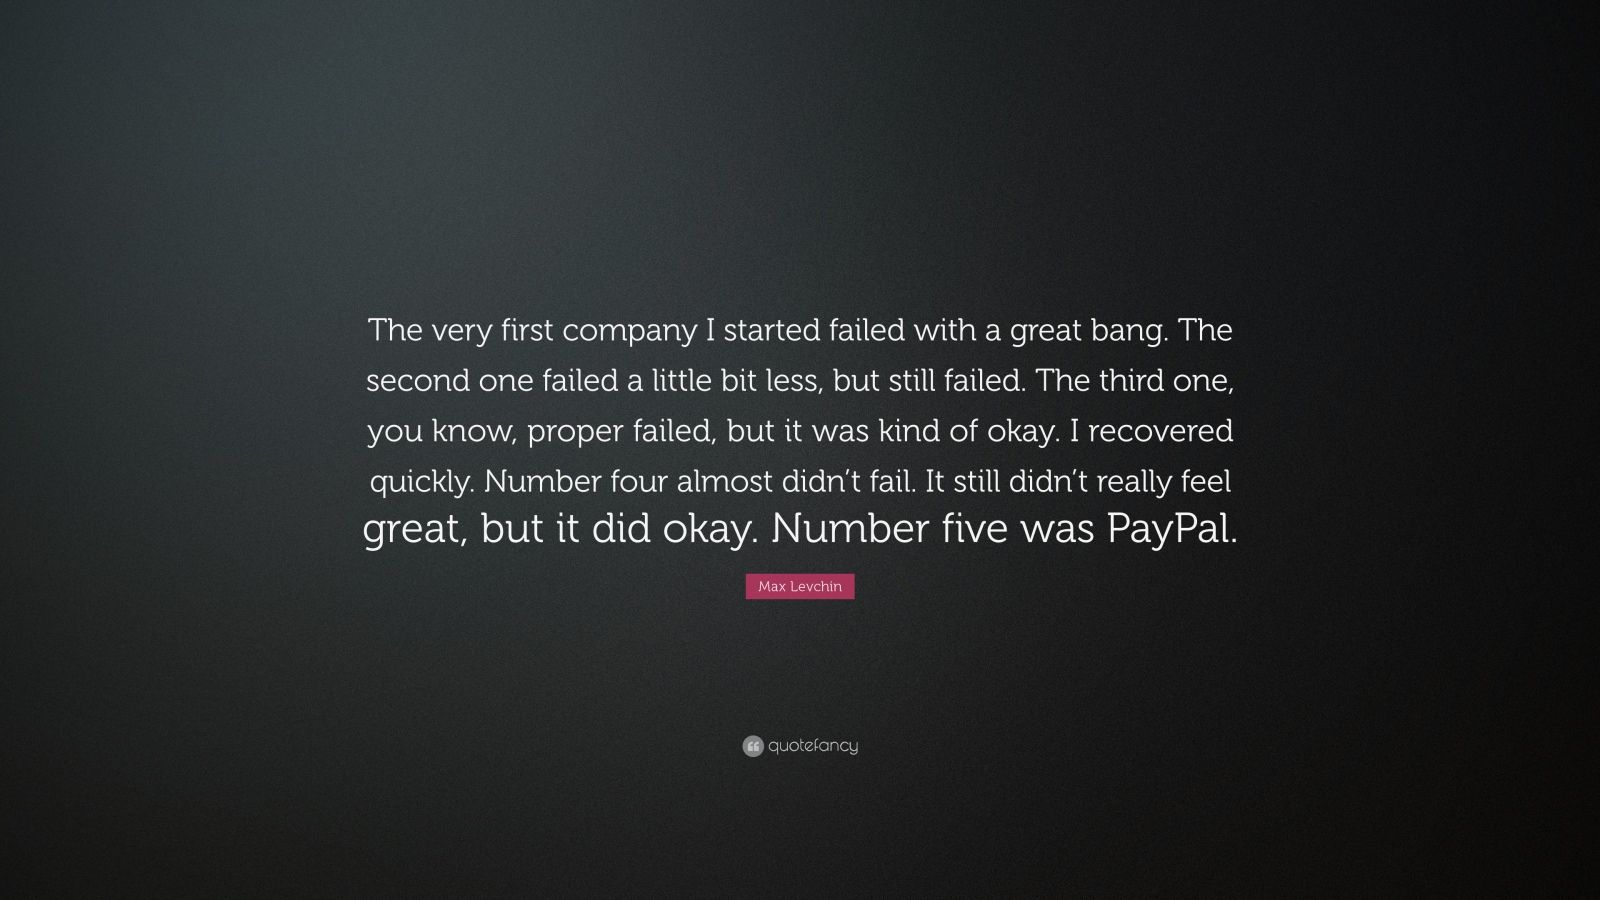 "Max Levchin Quote: ""The very first company I started failed with a great bang. The second one failed a little bit less, but still failed. The third one, you know, proper failed, but it was kind of okay. I recovered quickly. Number four almost didn't fail. It still didn't really feel great, but it did okay. Number five was PayPal."""